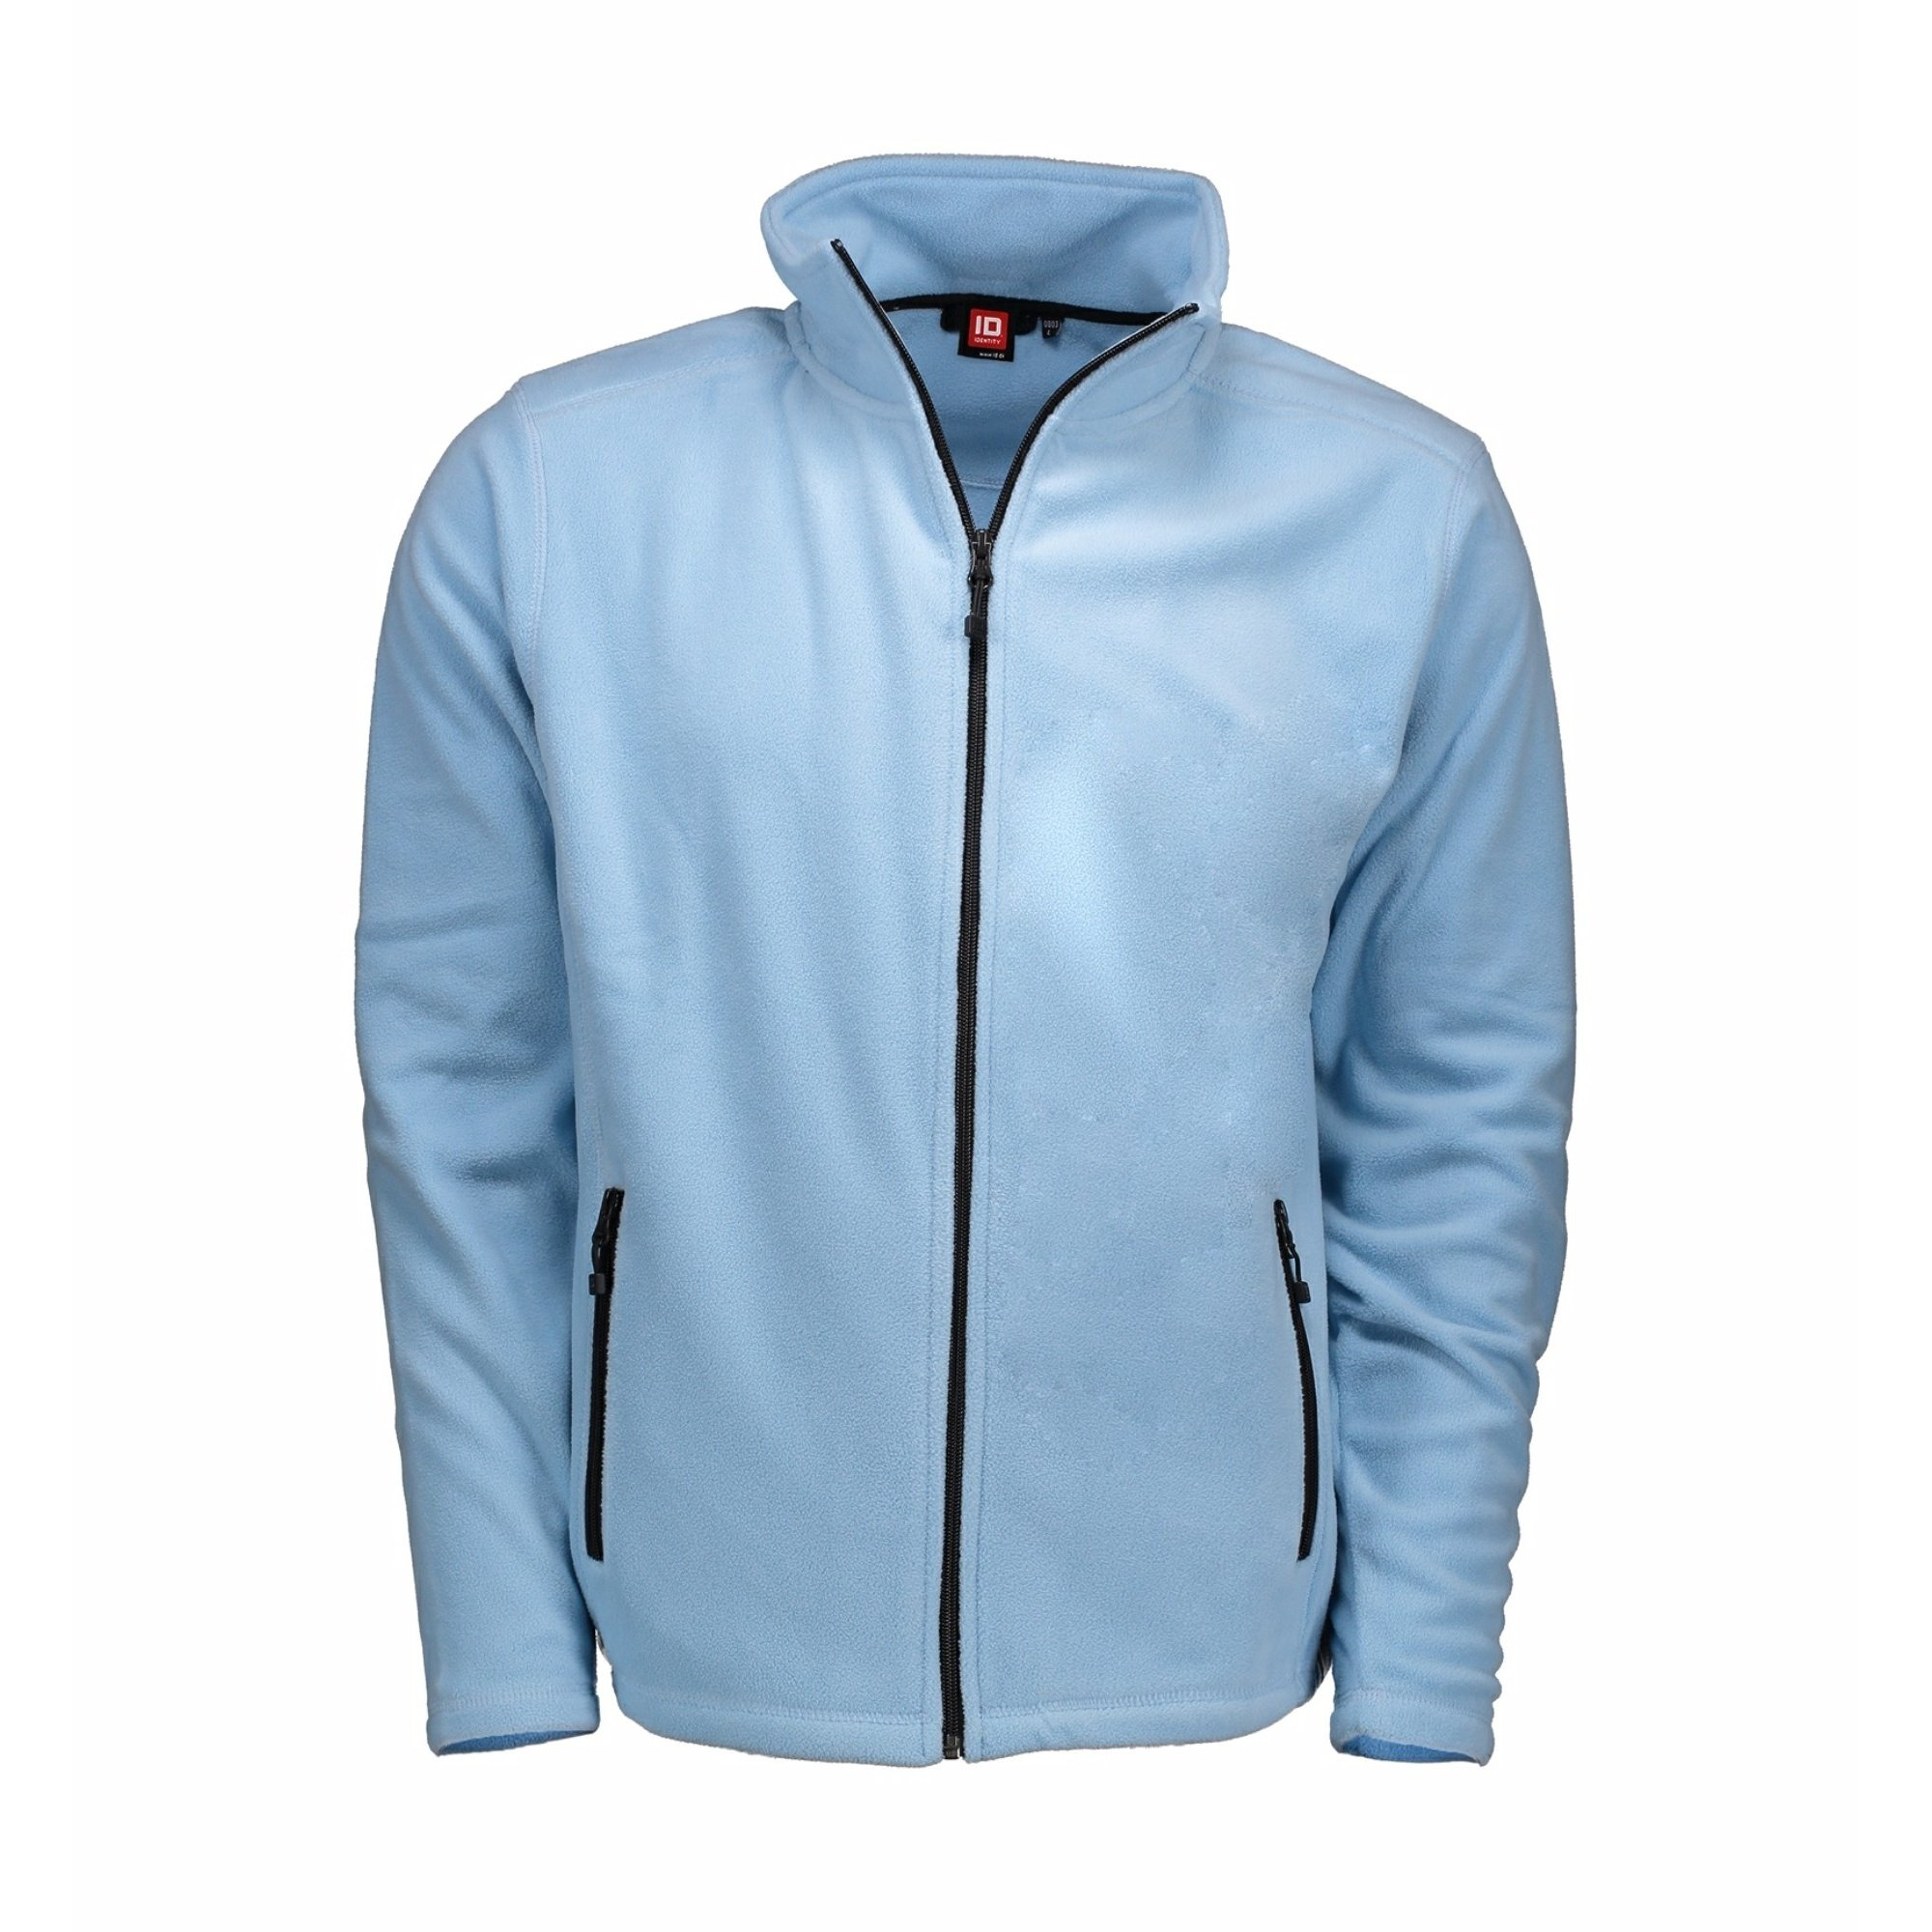 ID Mens Microfleece Full Zip Cardigan (2XL) (Light Blue)